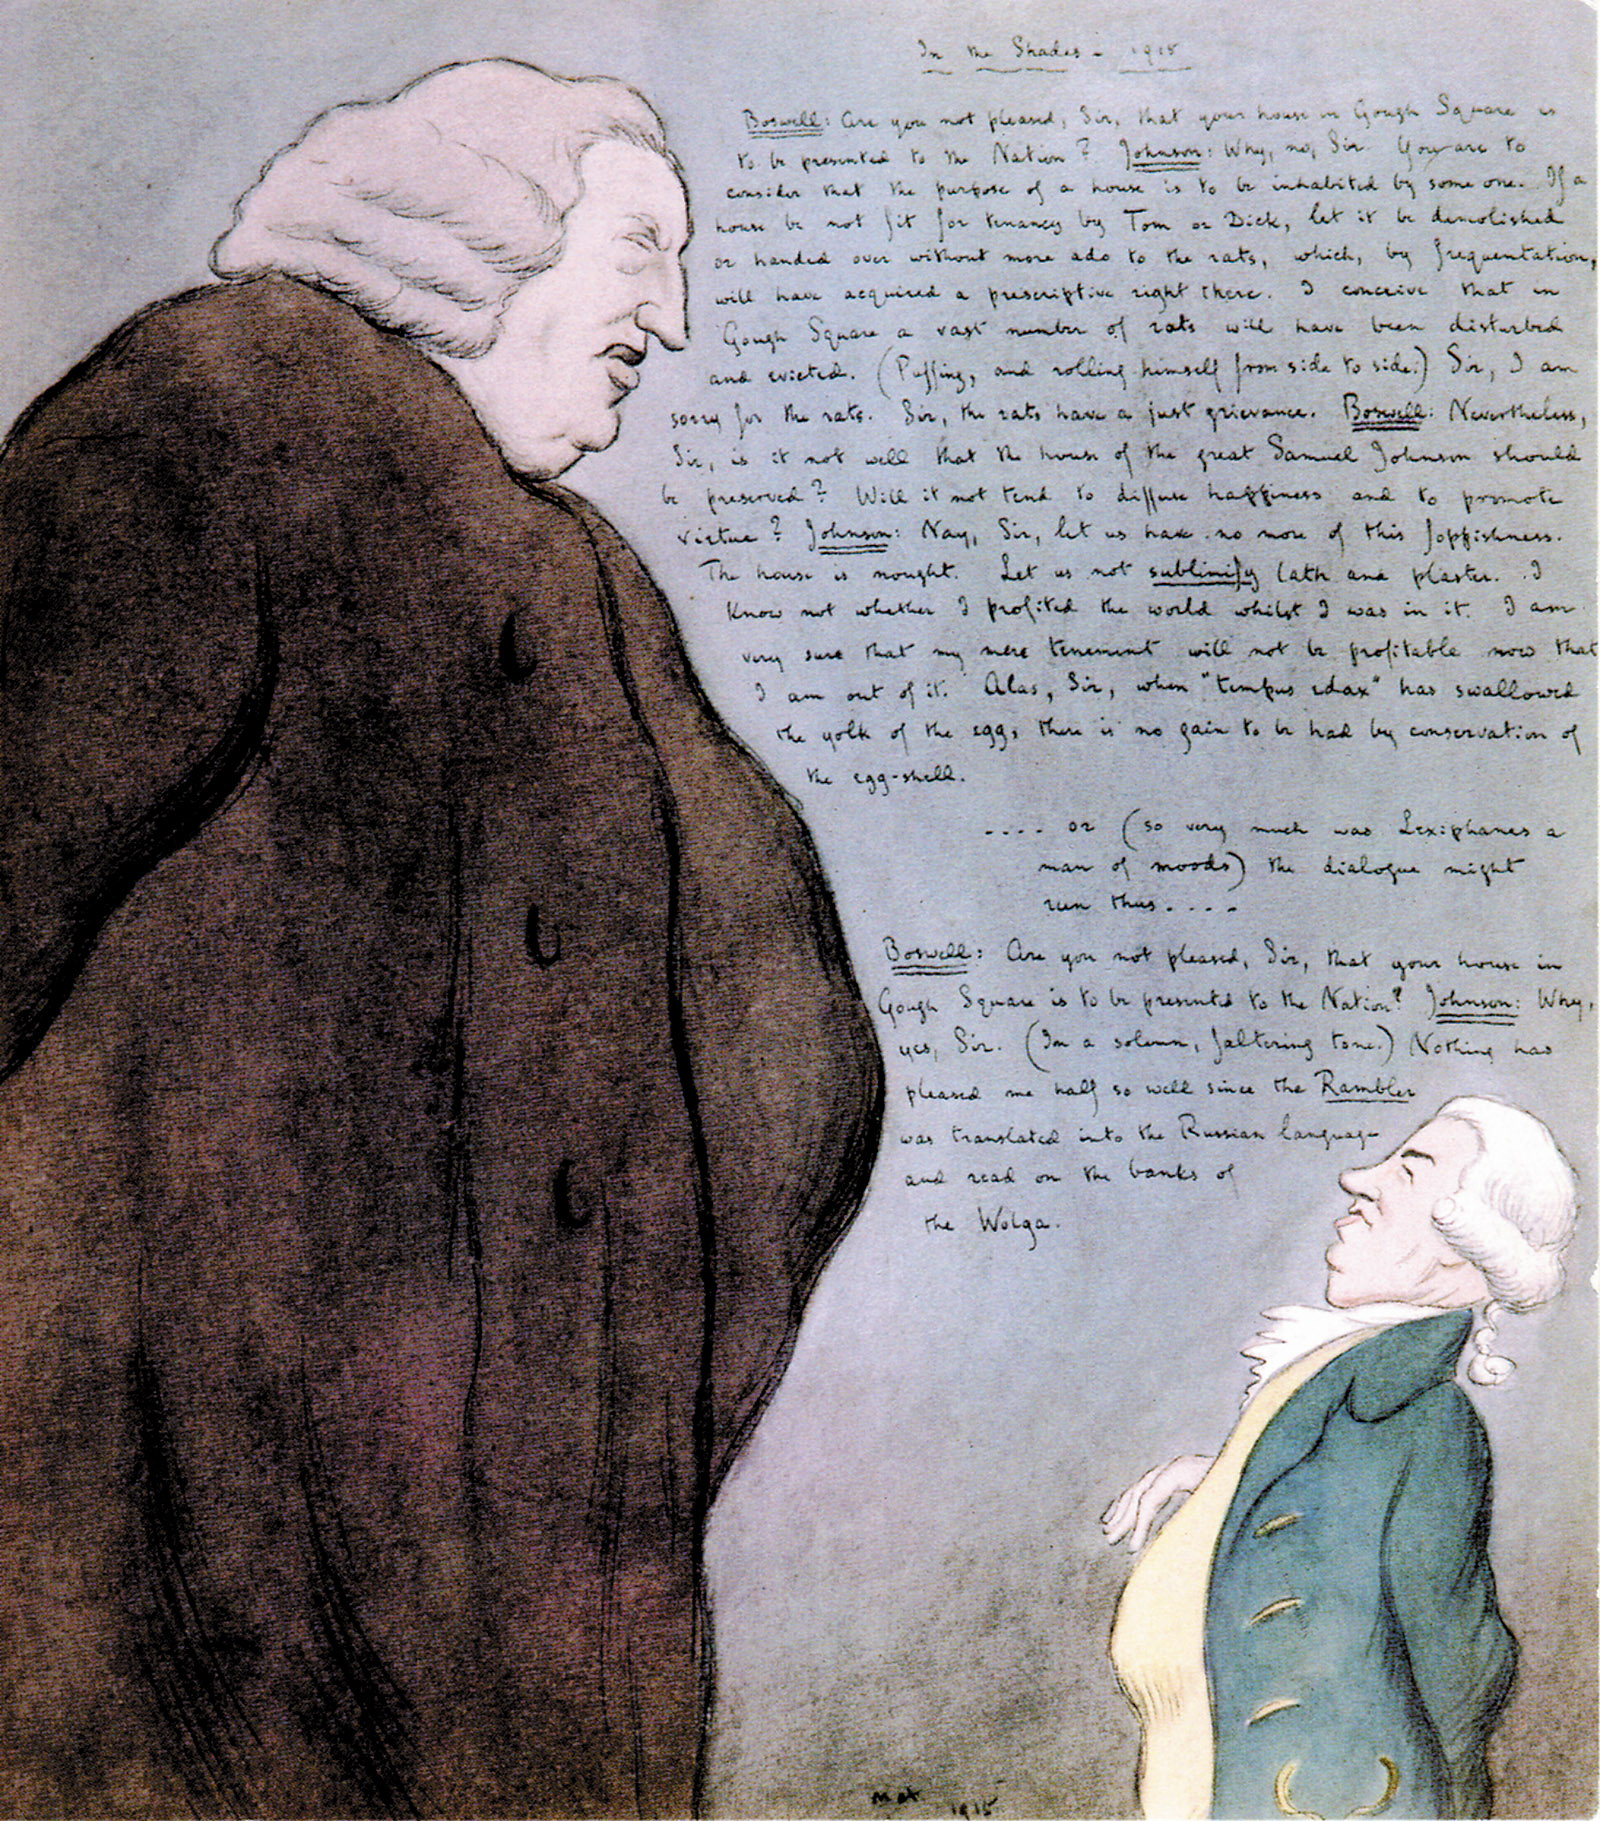 drawing of Samuel Johnson and James Boswell by Max Beerbohm